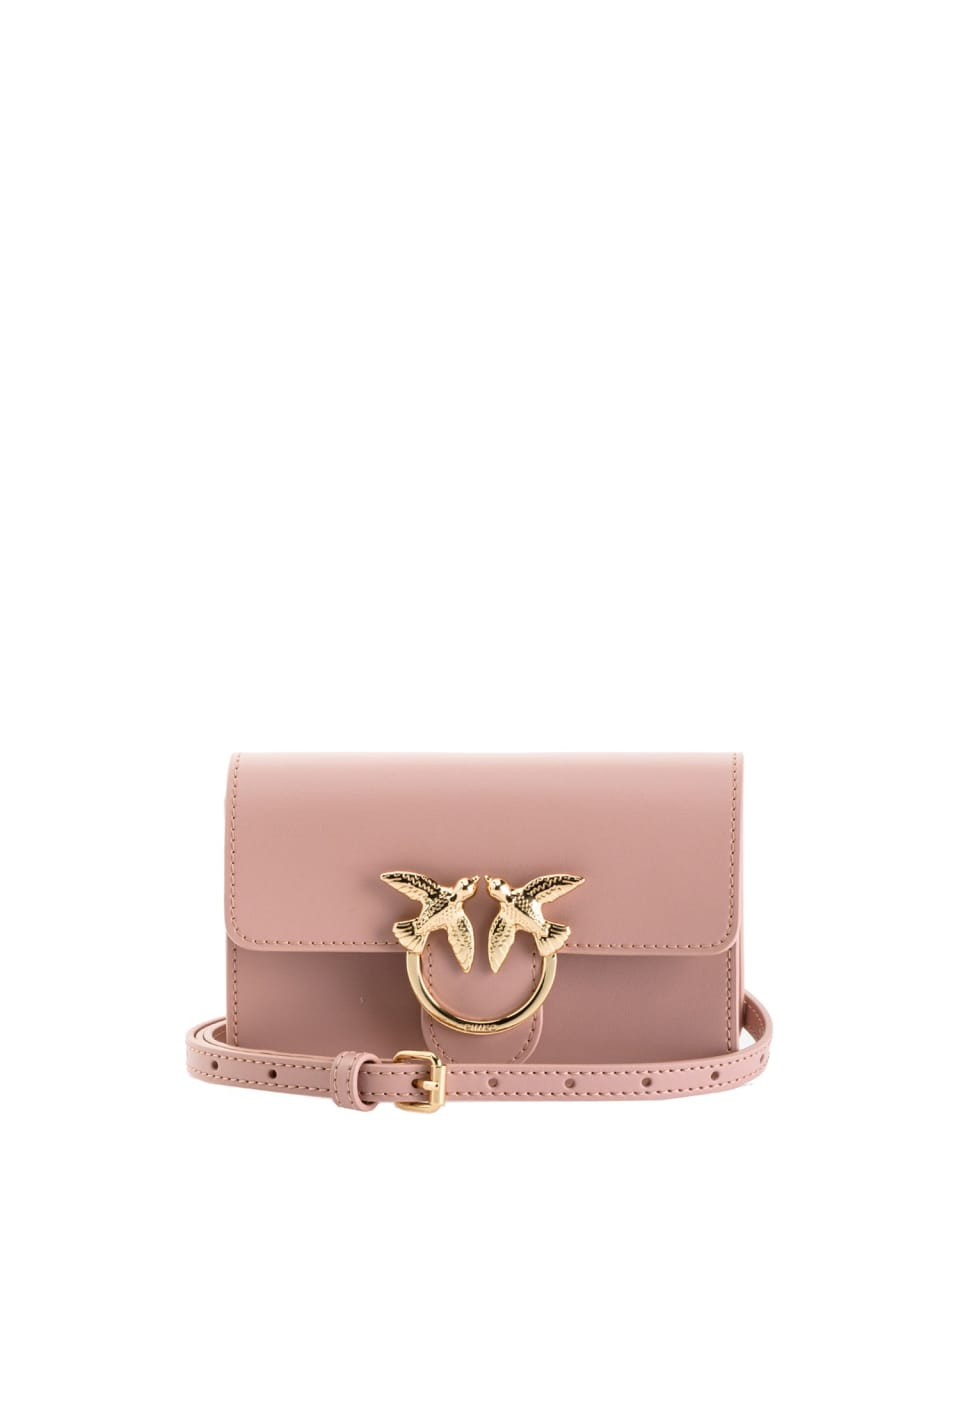 Baby Love Bag Simply in leather - Pinko